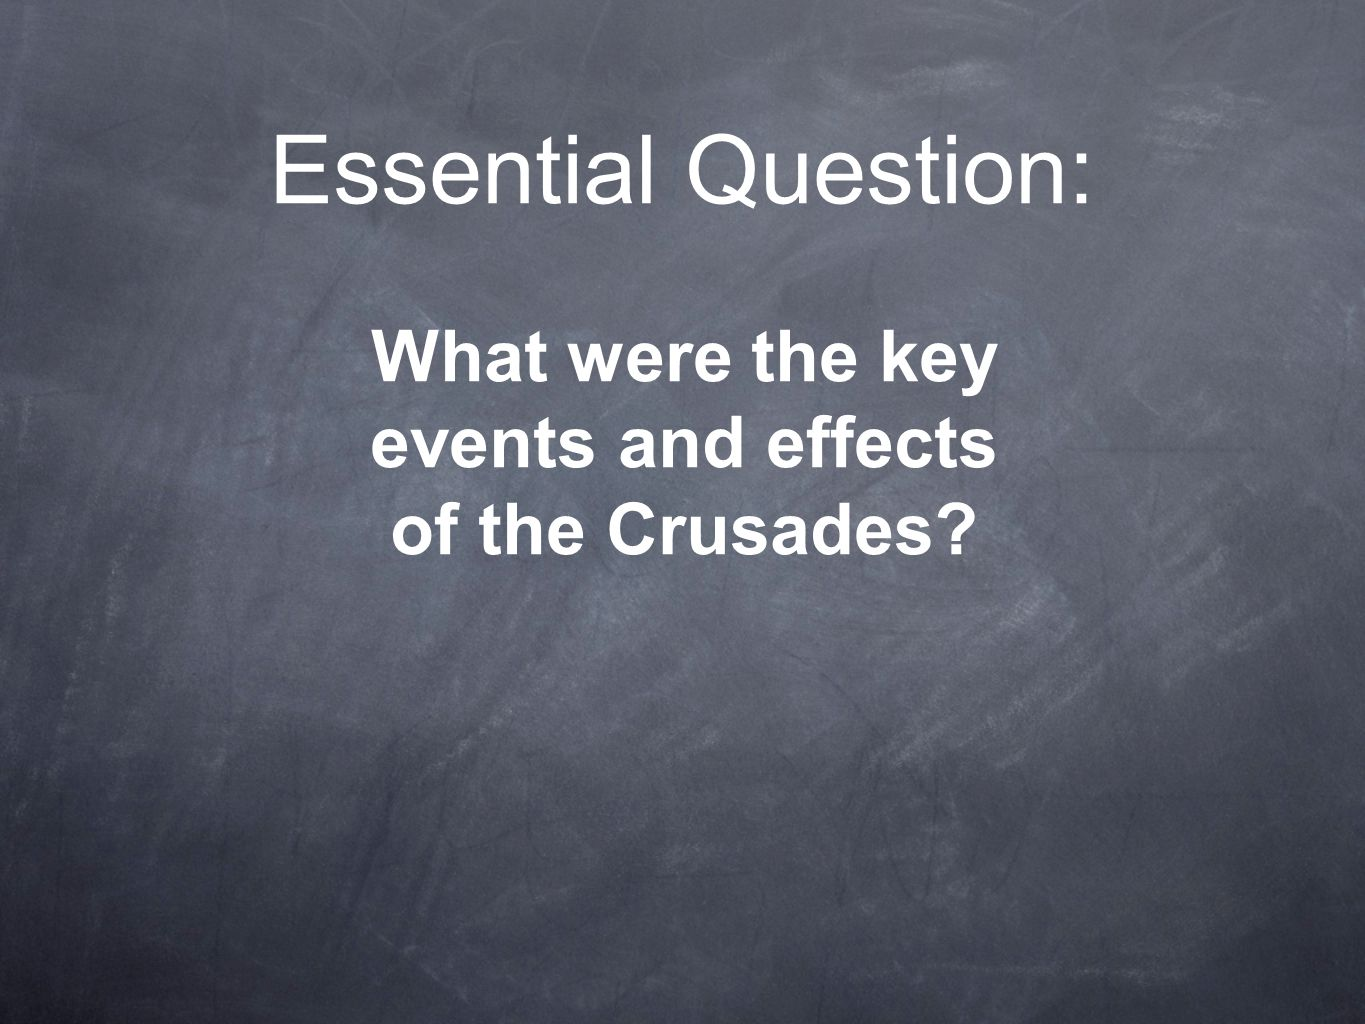 What were the key events and effects of the Crusades